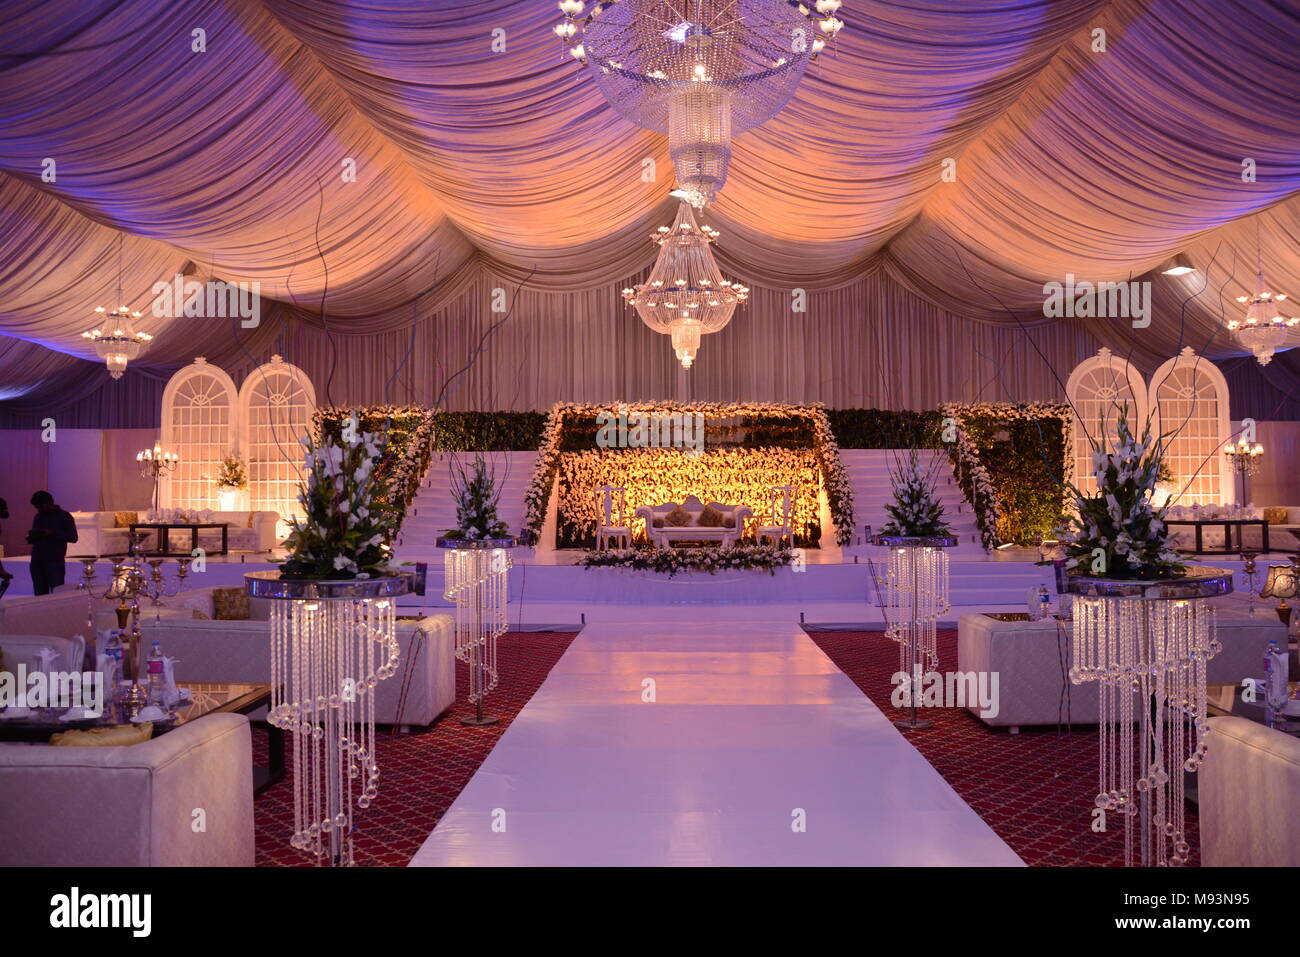 Wedding Setup Photos Wedding Setup Images Alamy